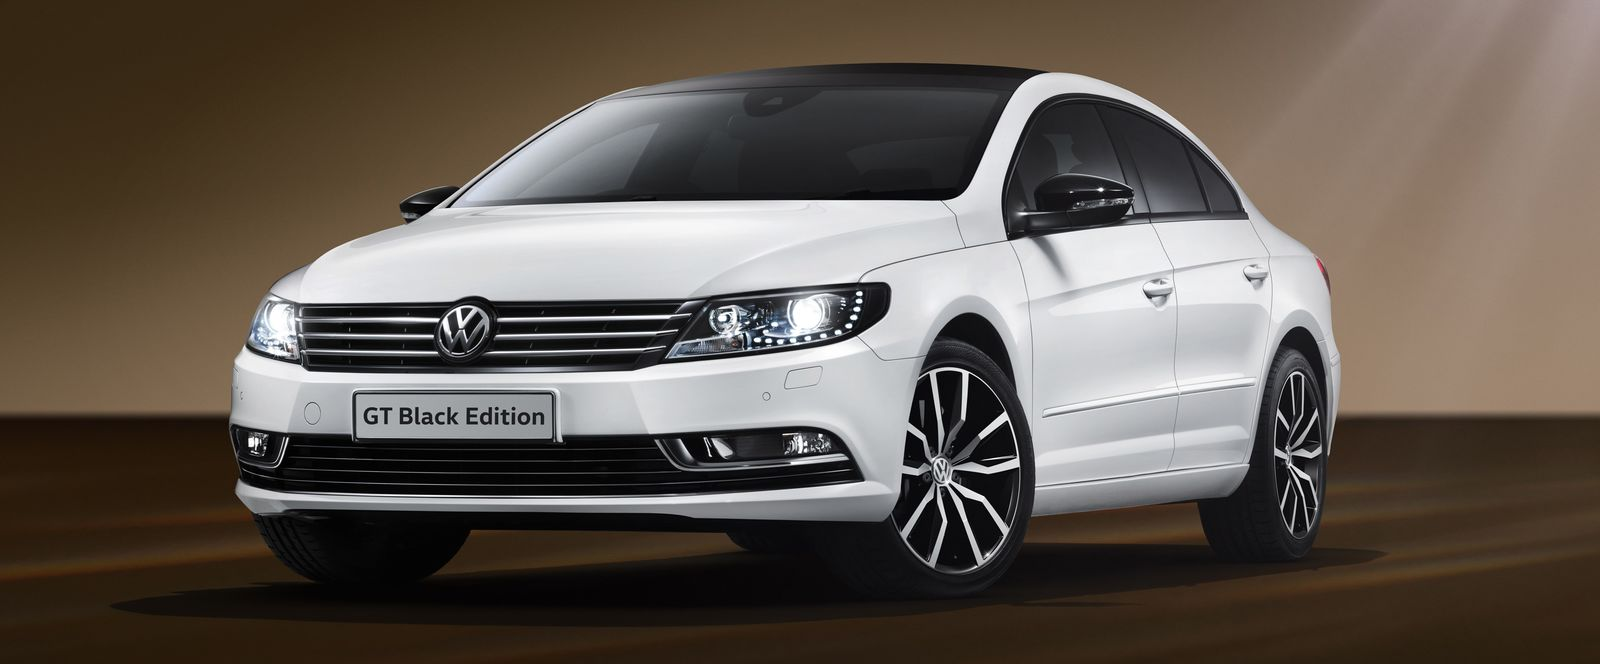 volkswagen black. white is the standard colour for black edition volkswagen